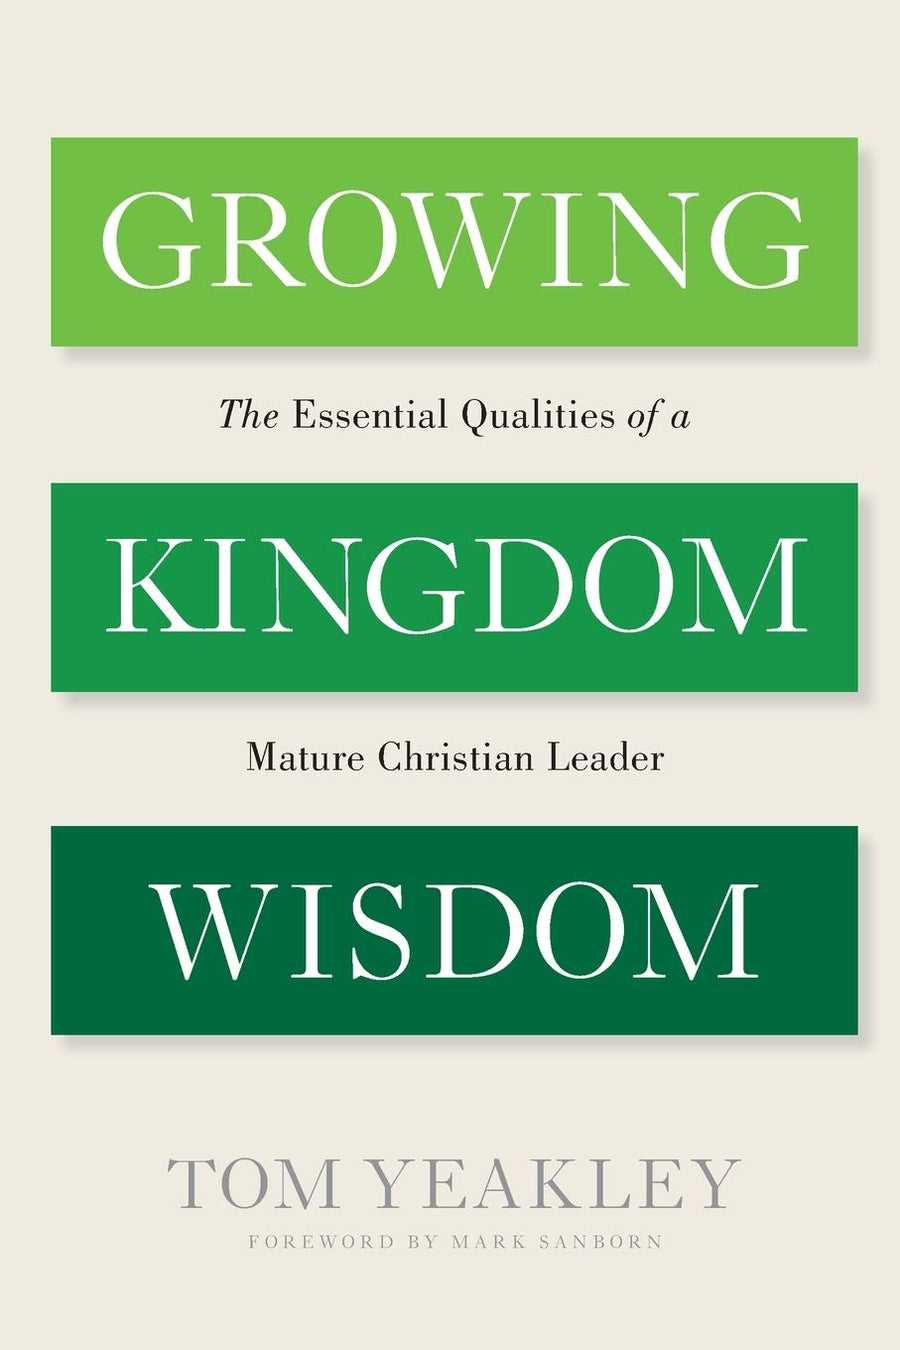 Growing Kingdom Wisdom - Leadership Books